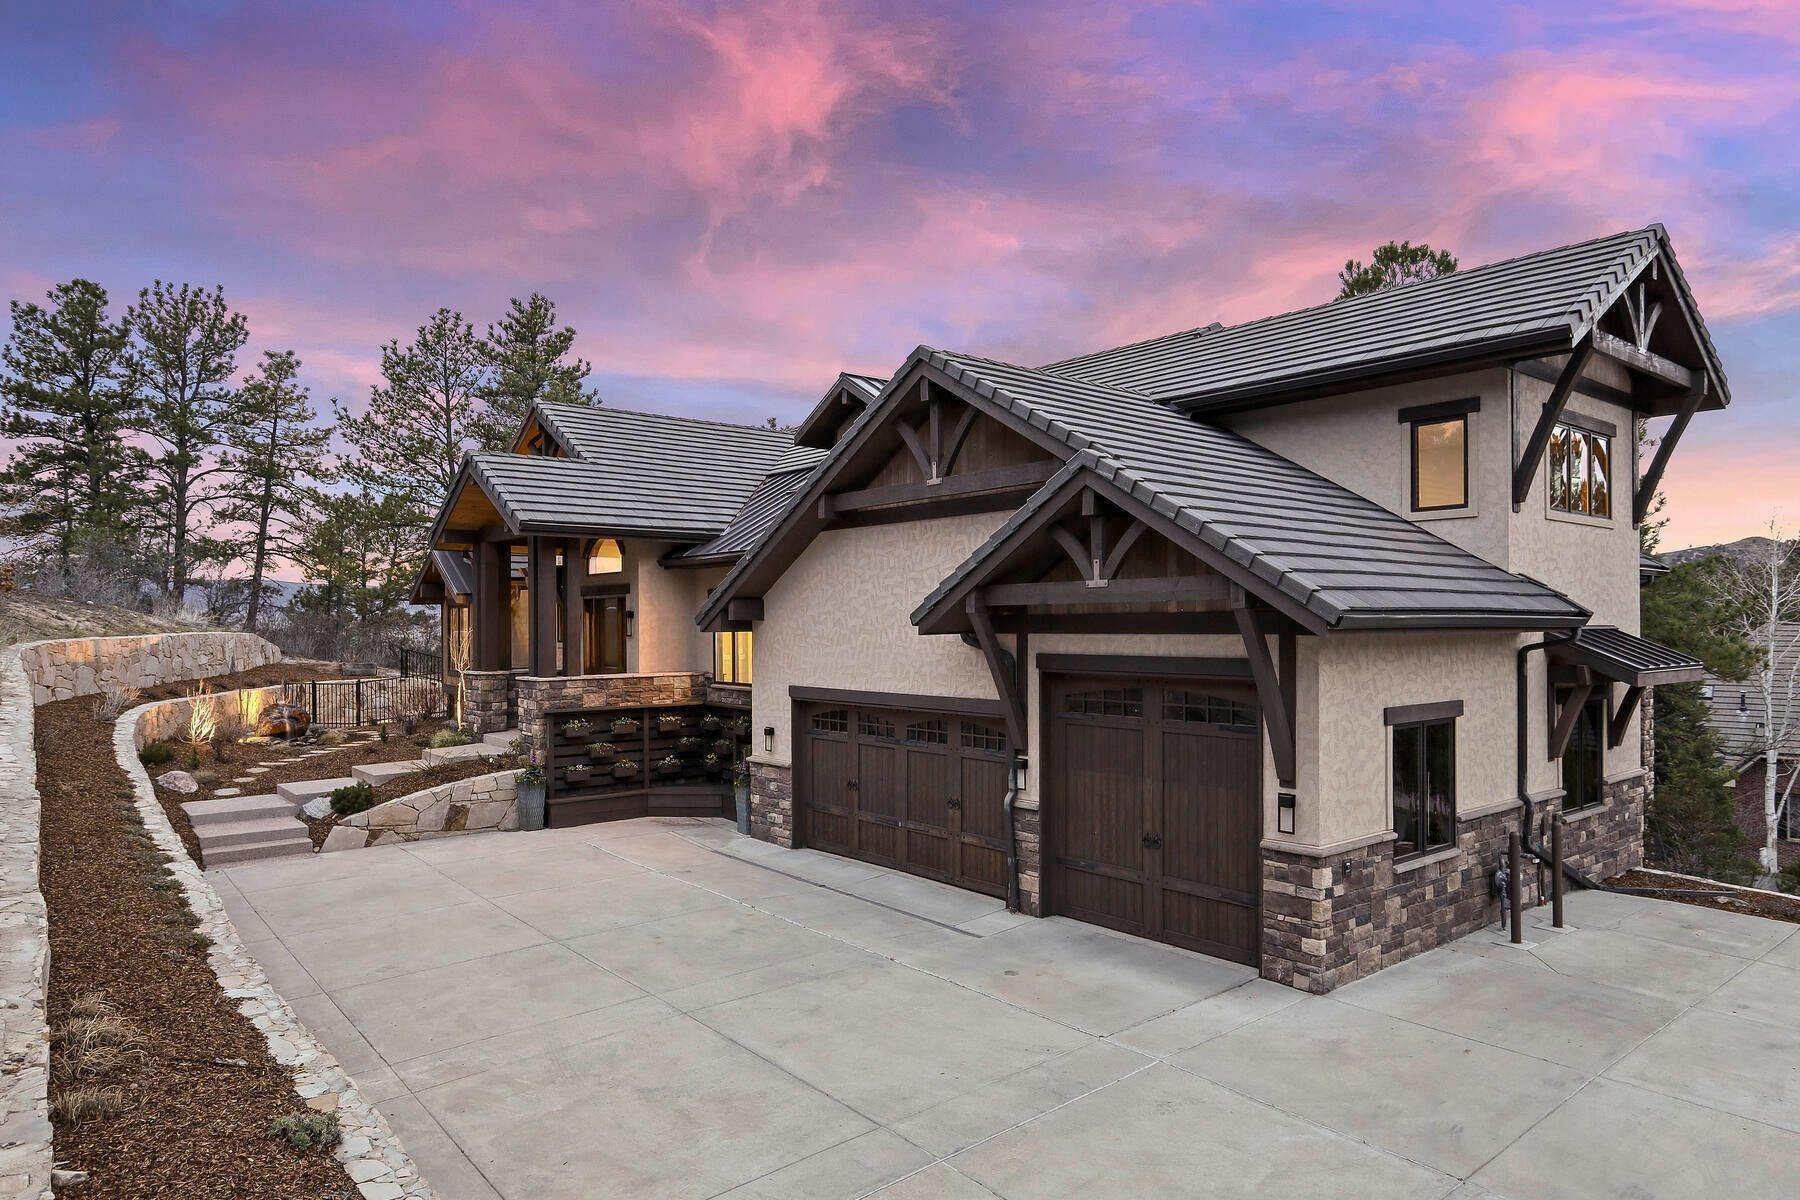 Single Family Homes for Active at 90 Silver Leaf Way, Castle Rock, Co, 80108 90 Silver Leaf Way Castle Rock, Colorado 80108 United States